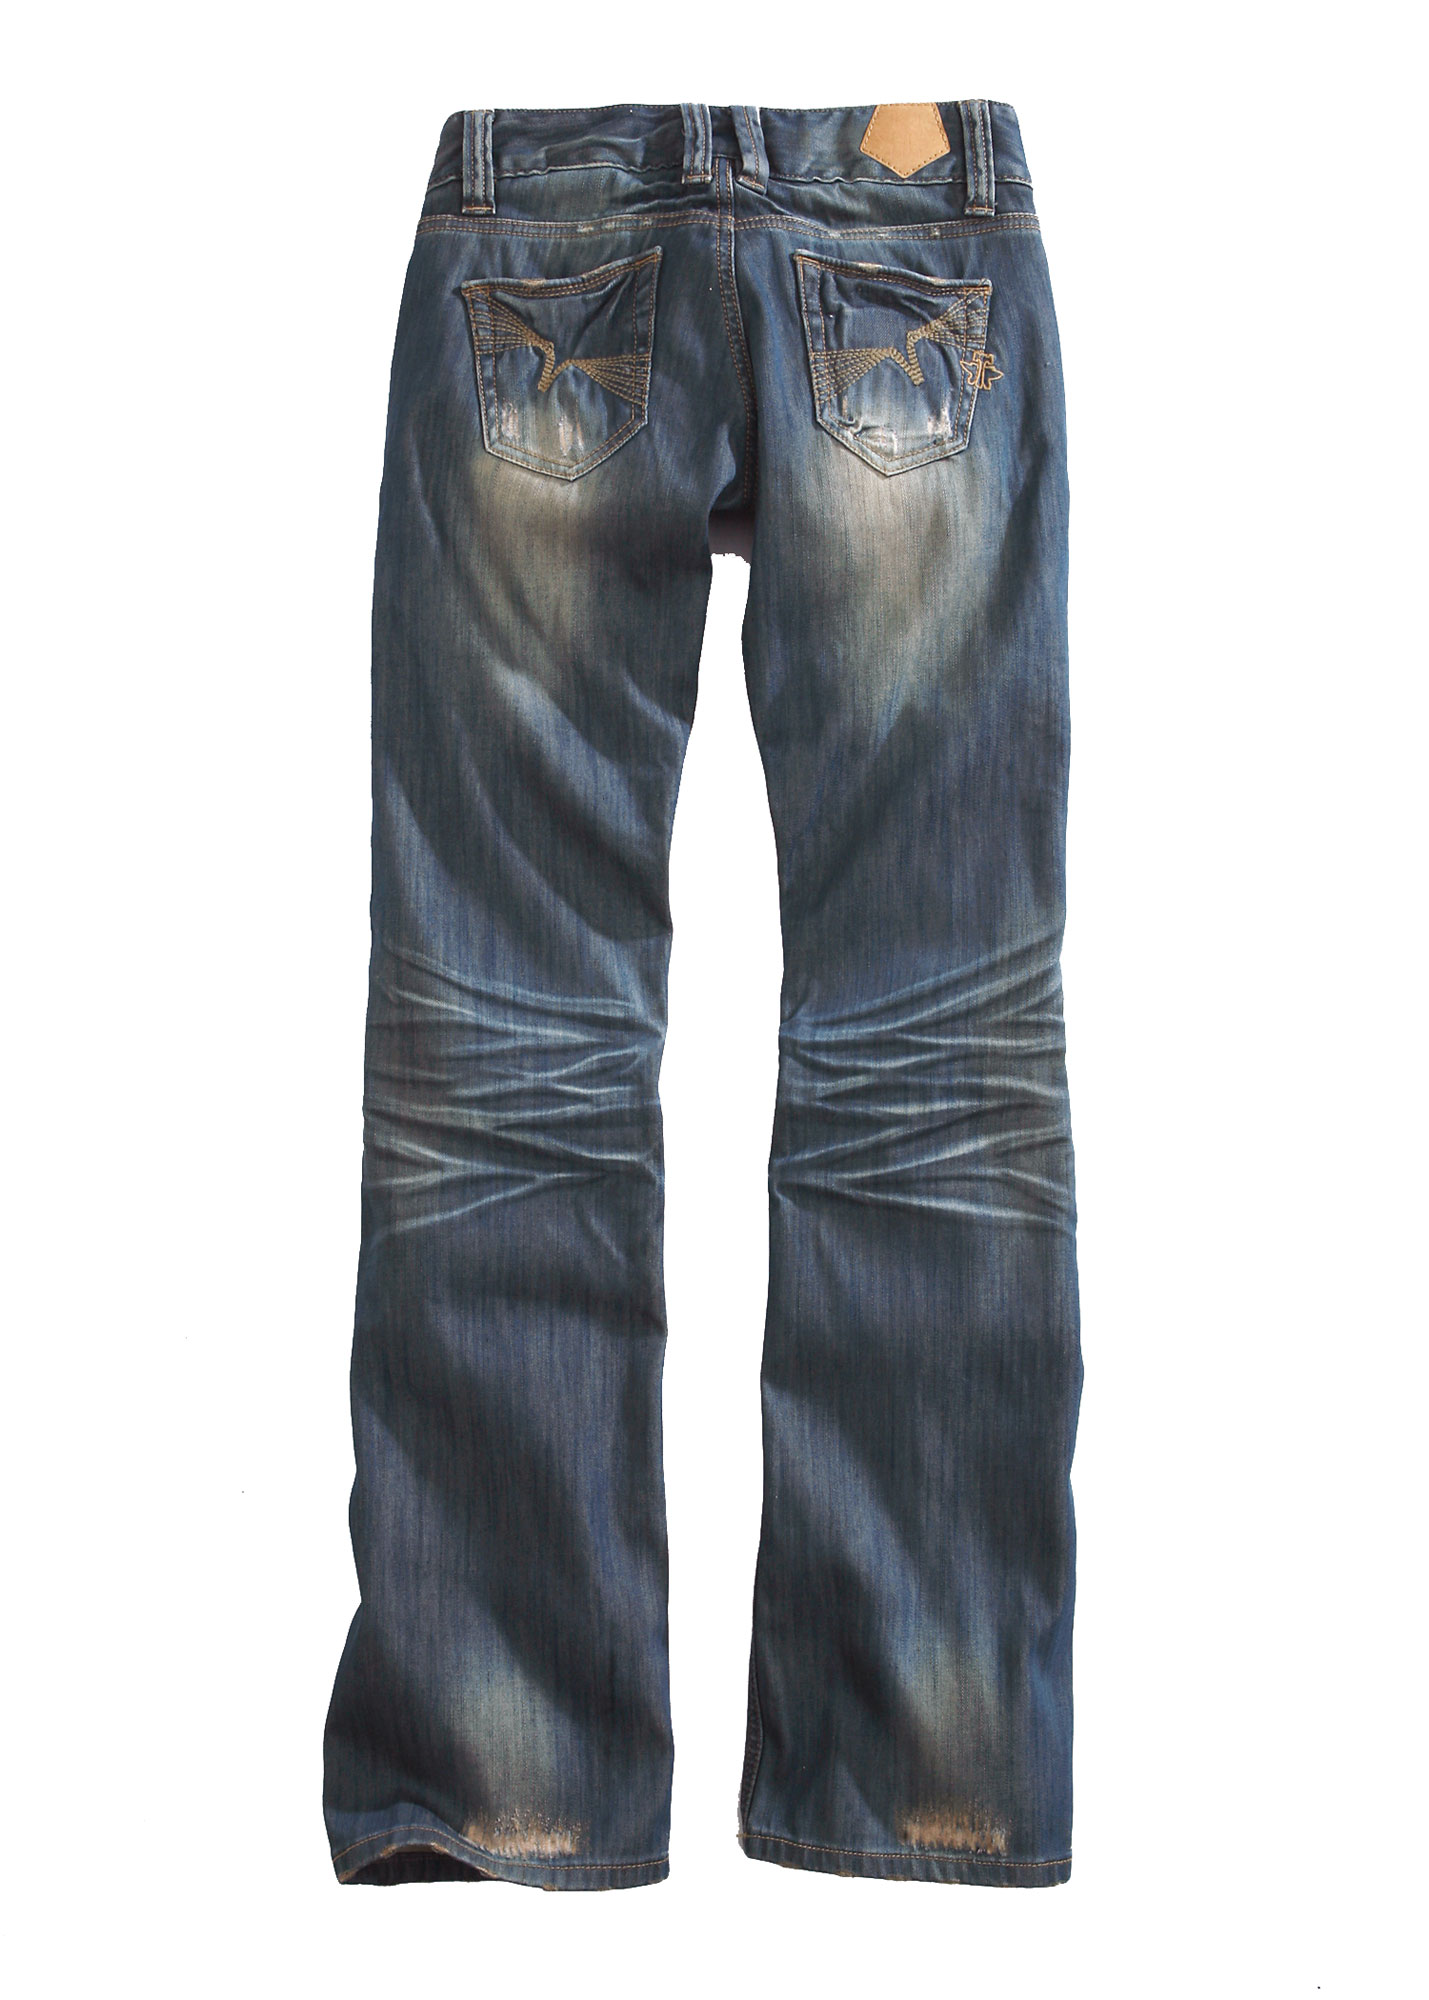 Shop % Cotton apparel at Wrangler. trueiupnbp.gq is your source for western wear, jeans, shirts & outerwear for men, women and kids.